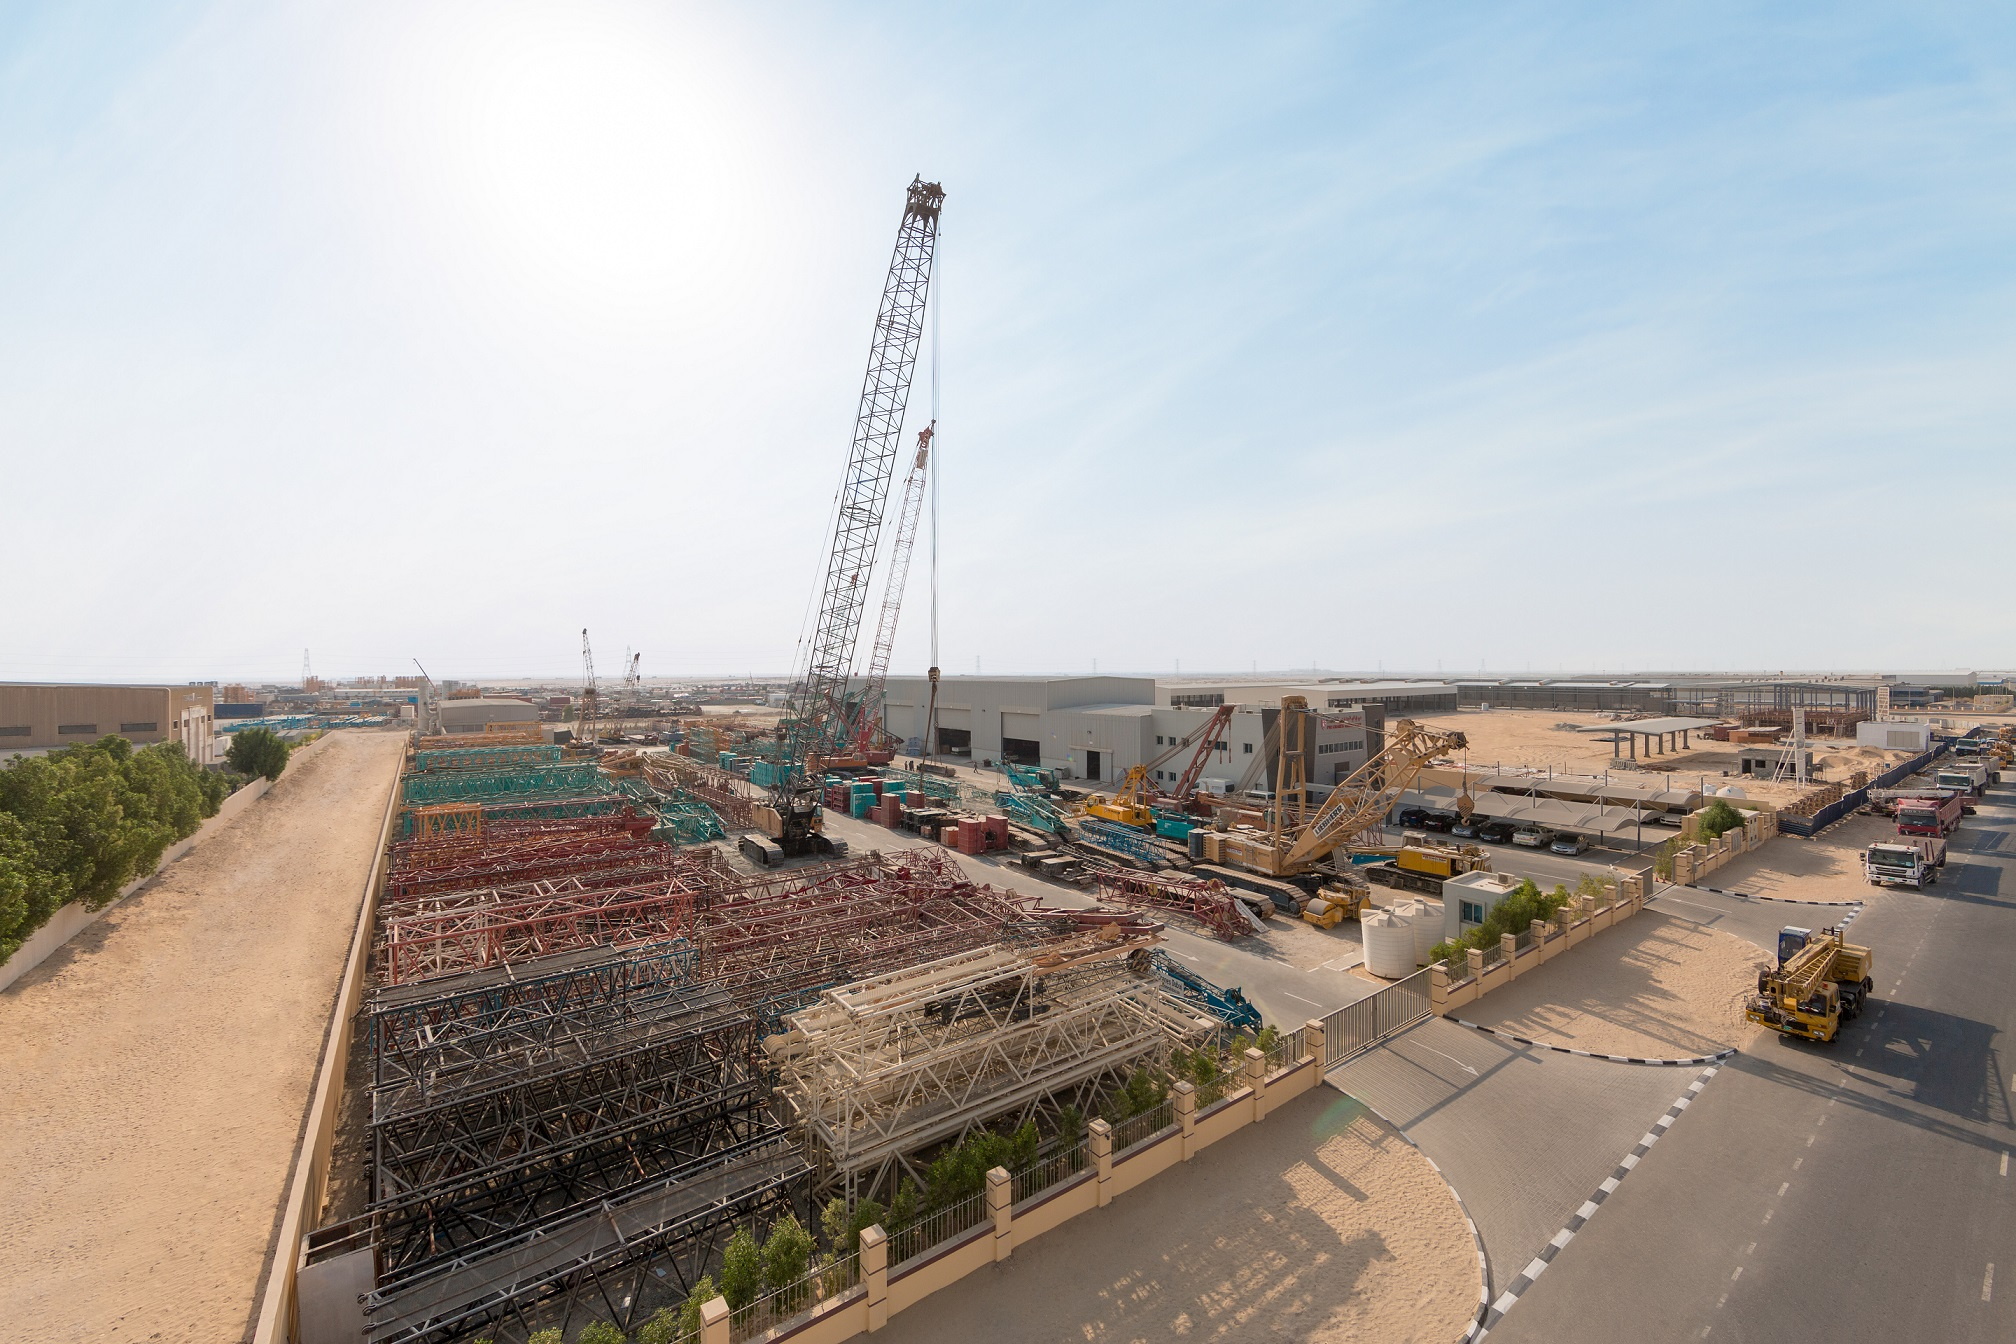 aed135 million investment expanding infrastructure at di